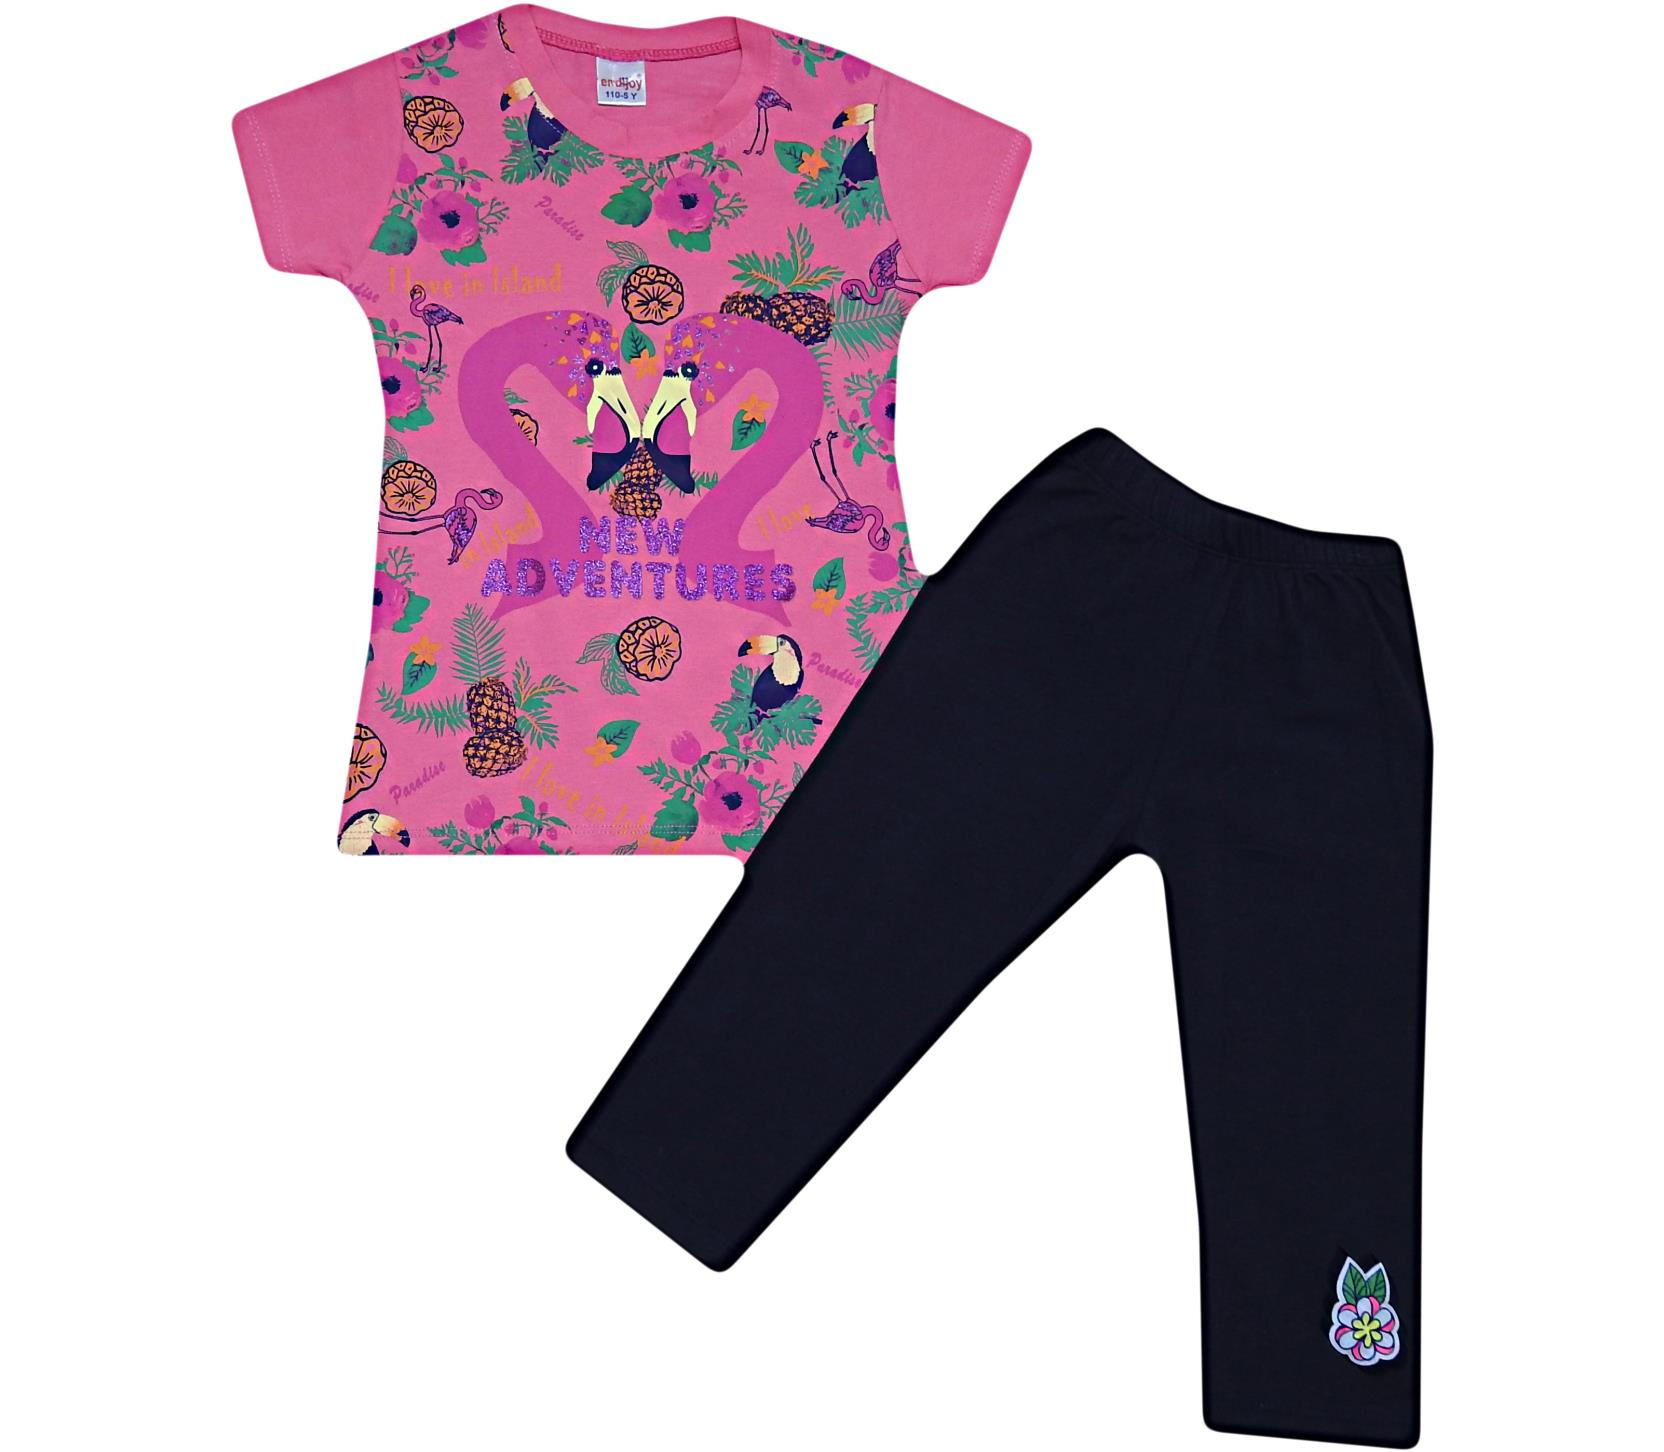 1388 wholesale quality and cheap two piece ' new adventures ' printed set for girl children 5-6-7-8 age